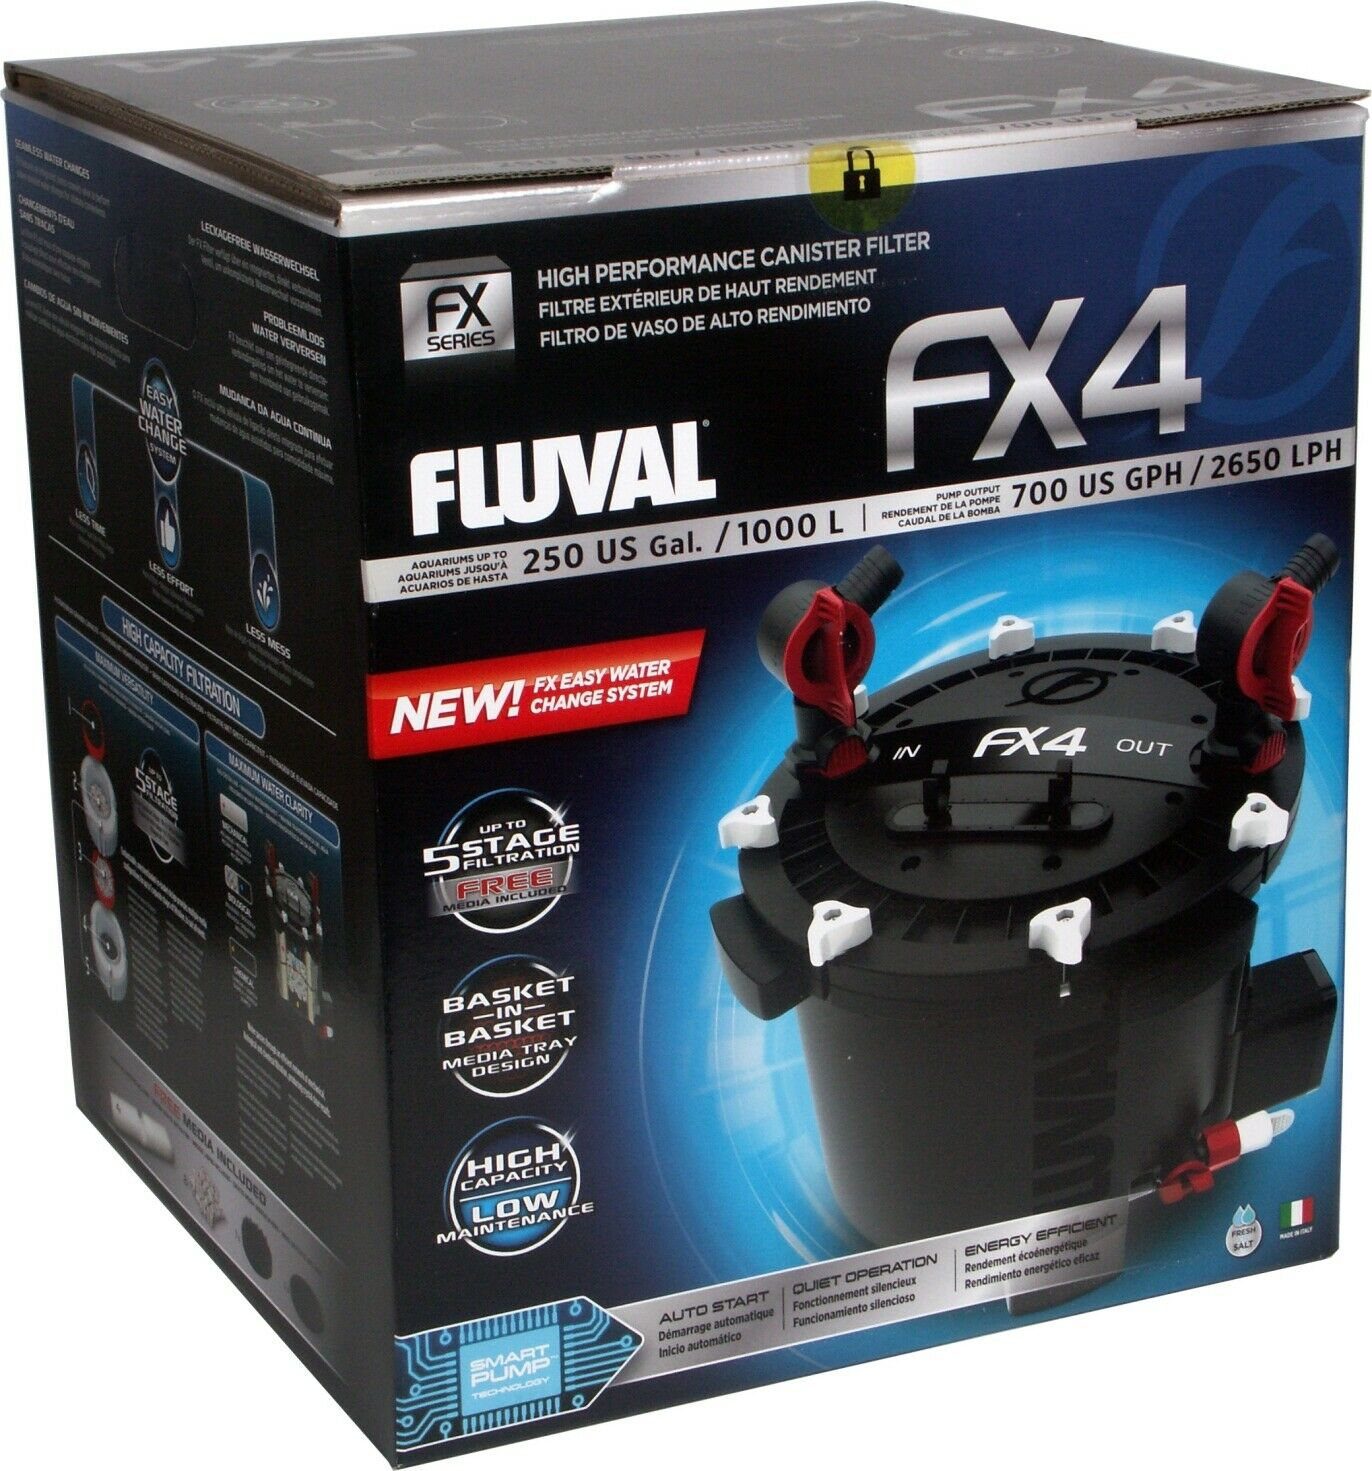 Fluval FX4 Canister Filter Includes ALL Media Complete Packa